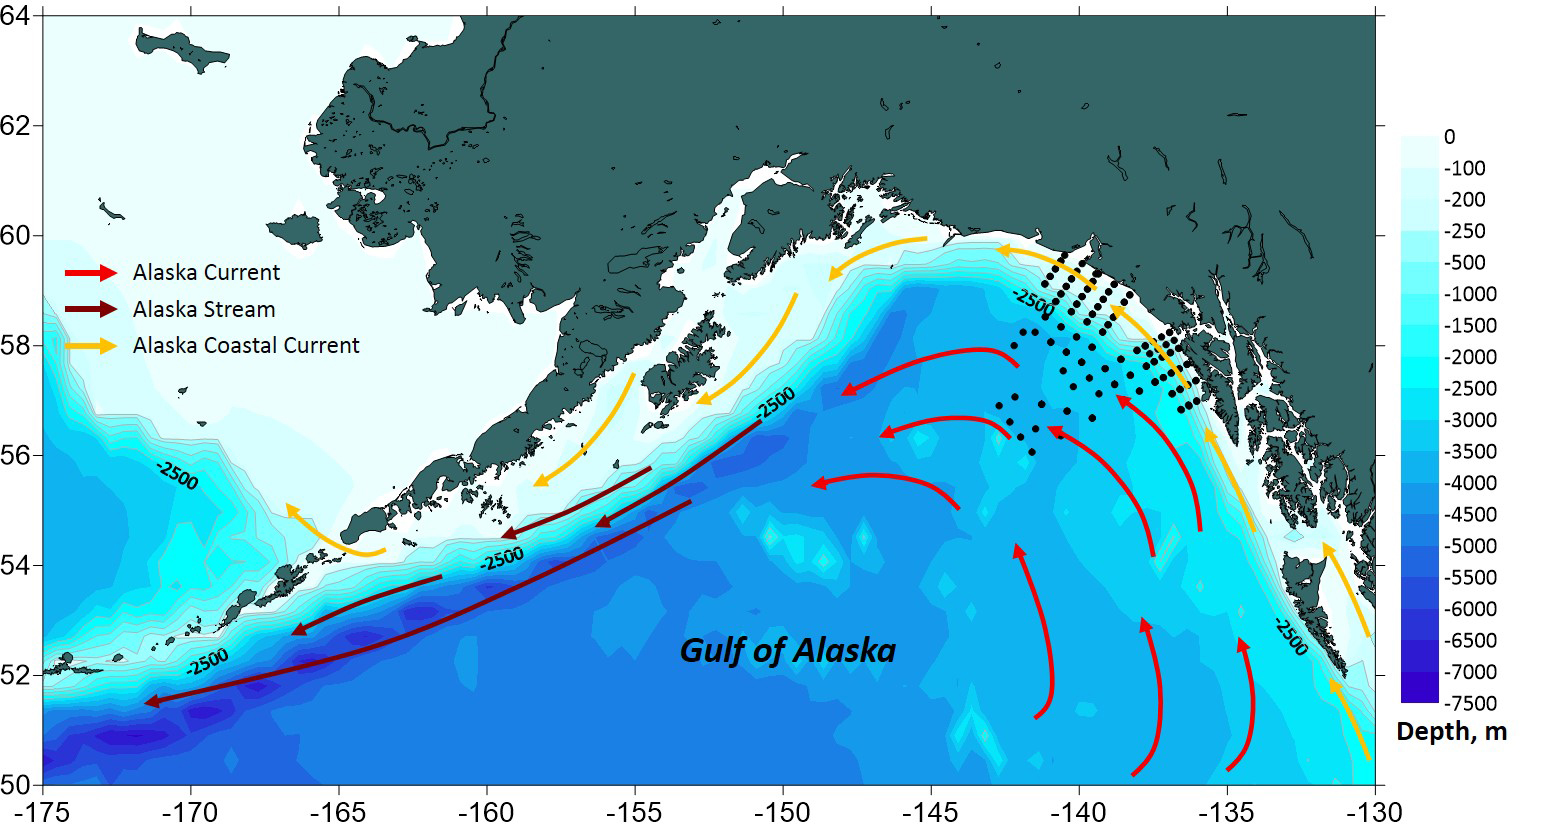 Water depth map illustrating the Gulf of Alaska currents and the sampling locations Alexei and his team monitored in the summer of 2016-2017.